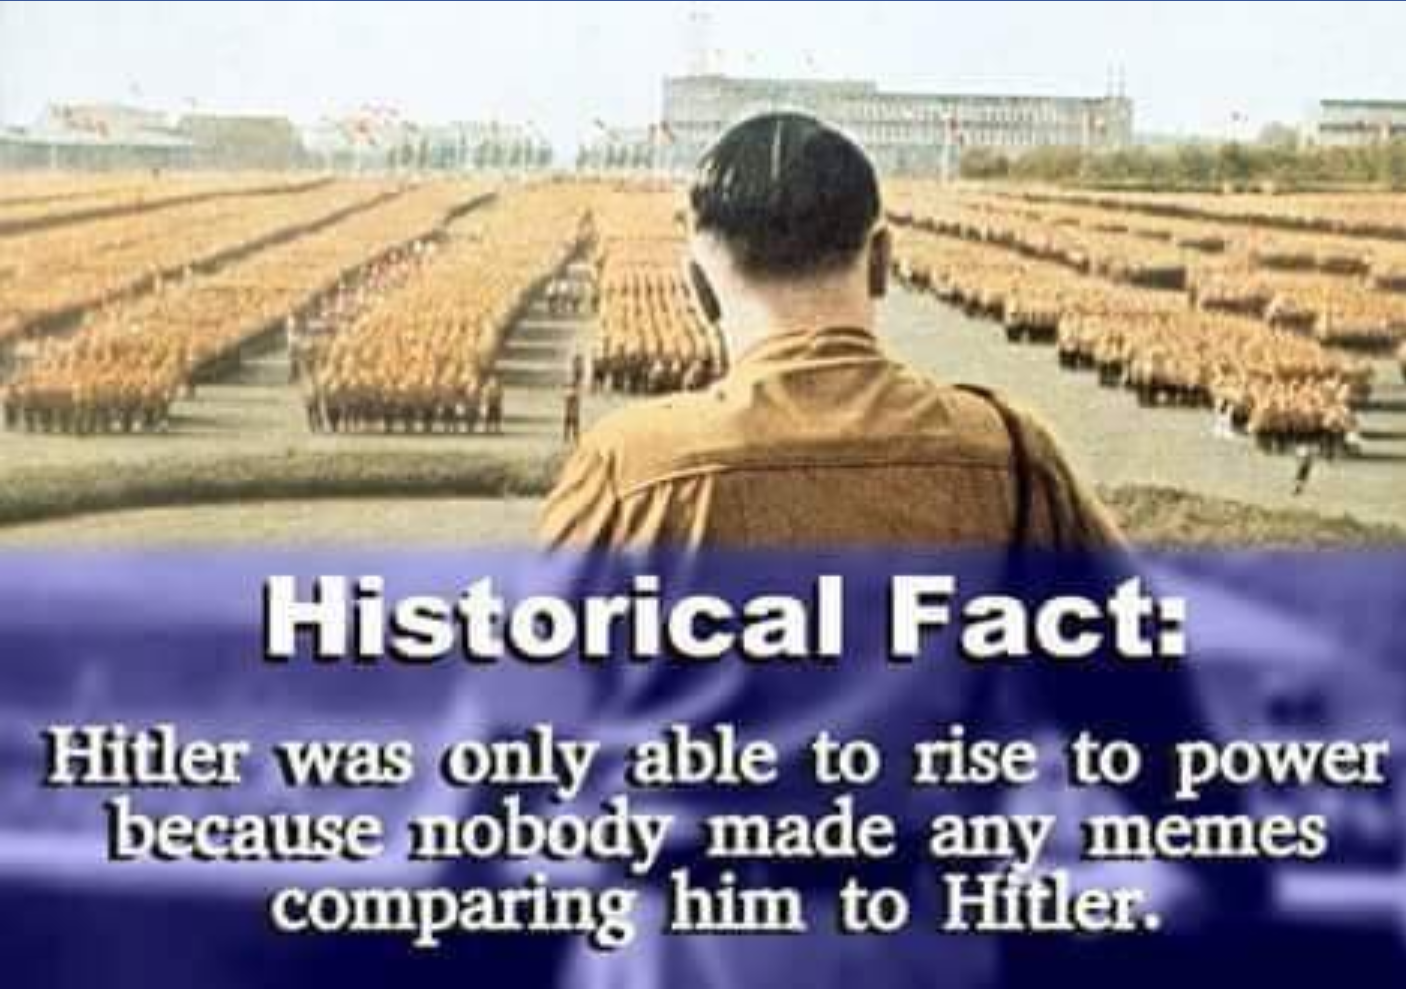 Historical fact hitler was only able to rise to power ecause mobody made any memes comparing